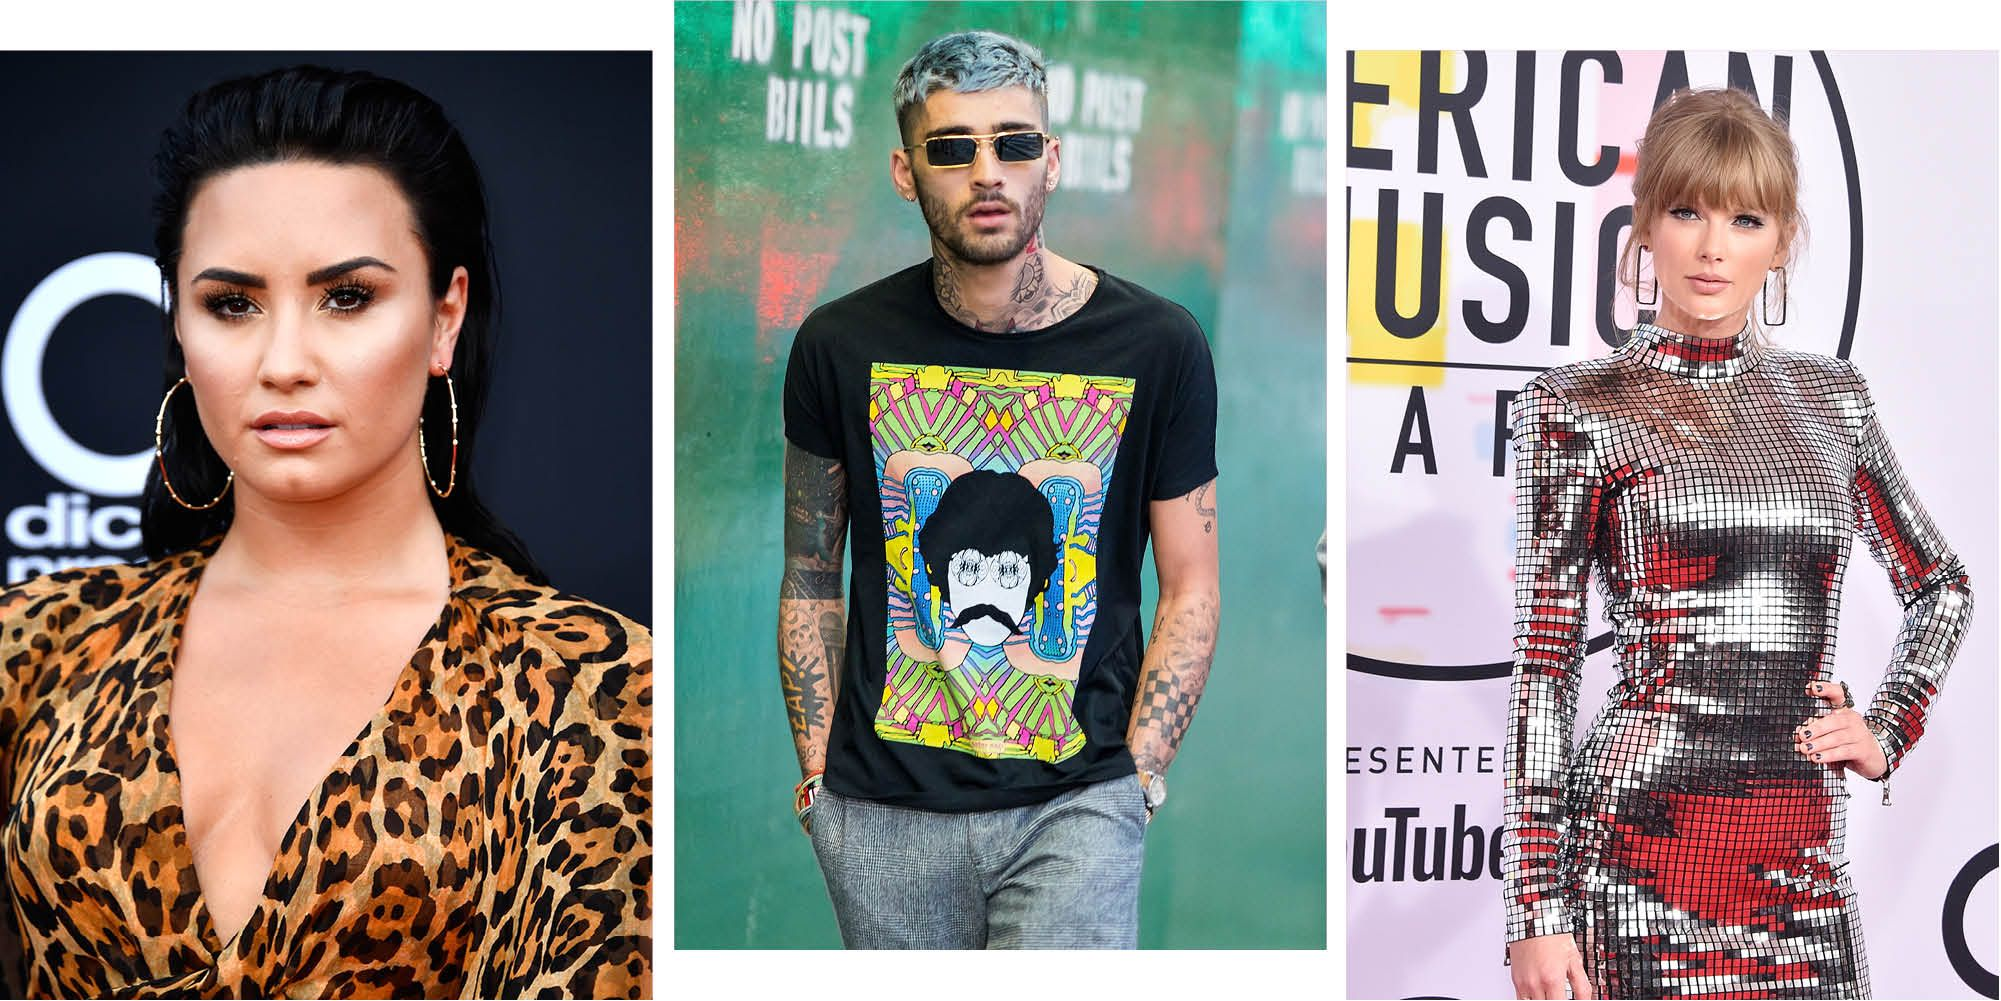 7Celebs Who Opened UpAbout Their Mental Disorders toMake aDifference